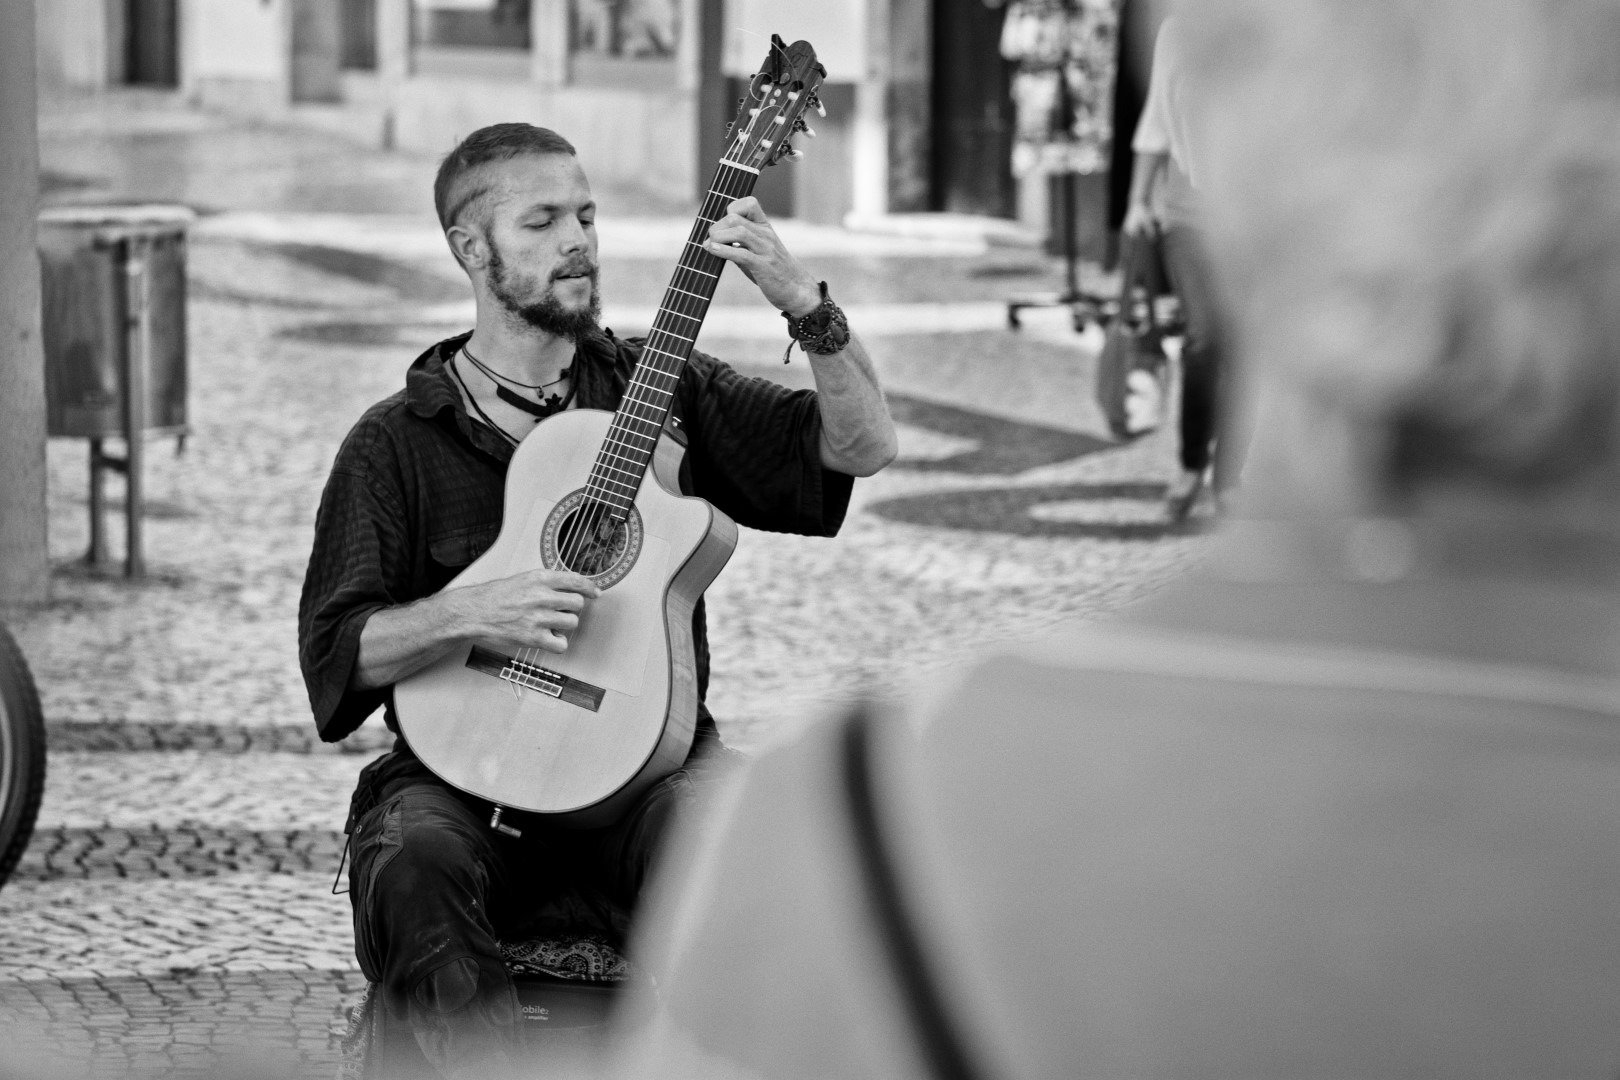 Portugal_street_musician_03